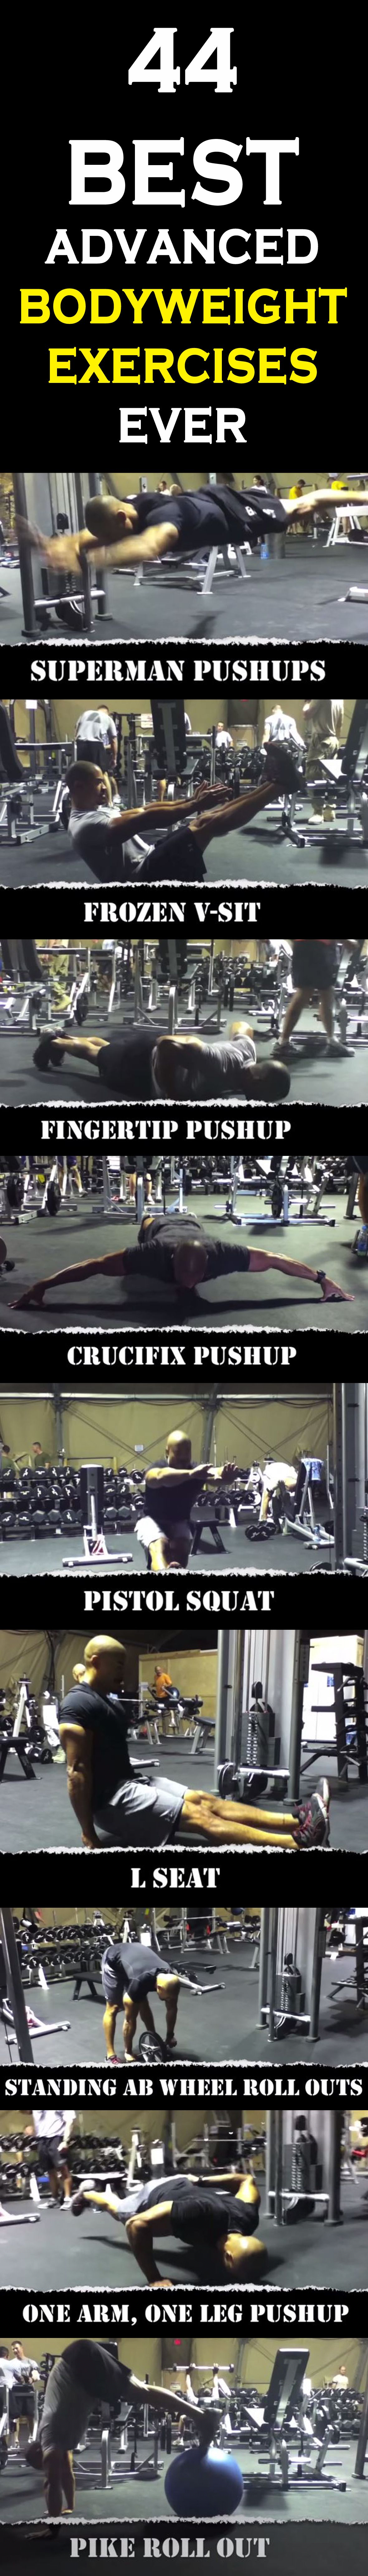 best bodyweight exercises ever exercise workout fitness